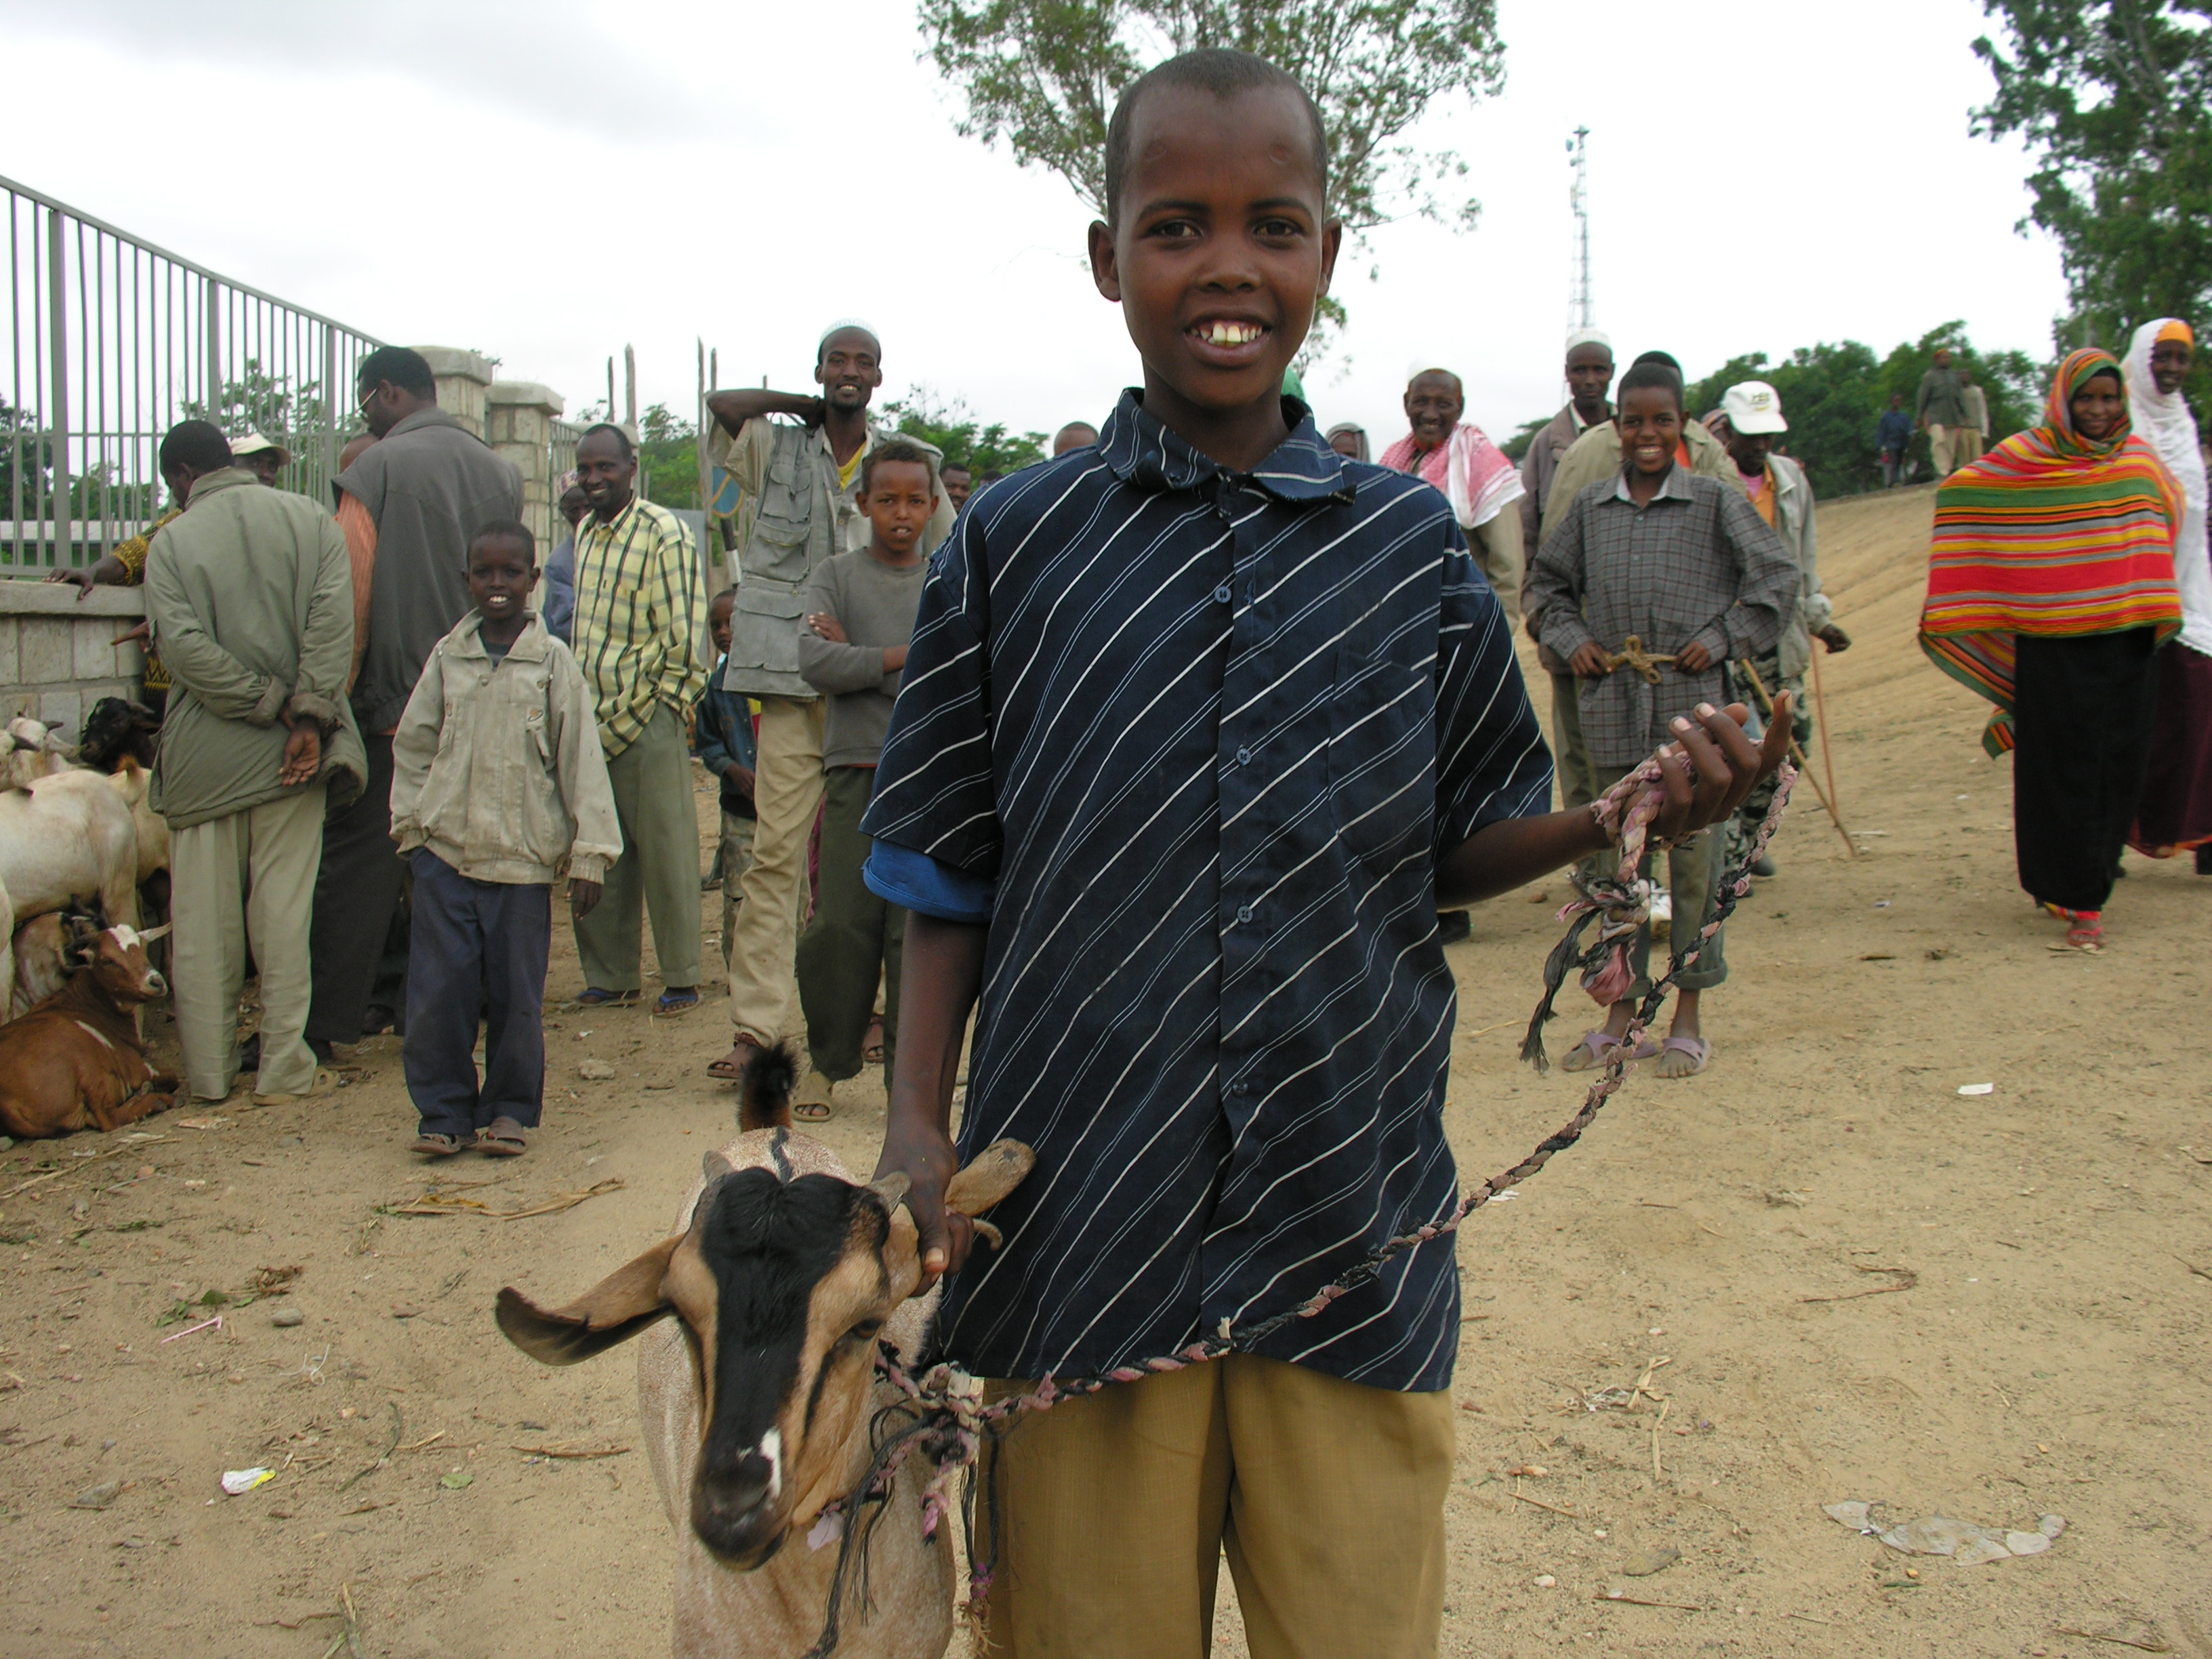 At the goat market in Moyale, Ethiopia, this goat herder gets ready to part with a prized posession. Photo by Sarah Livingston